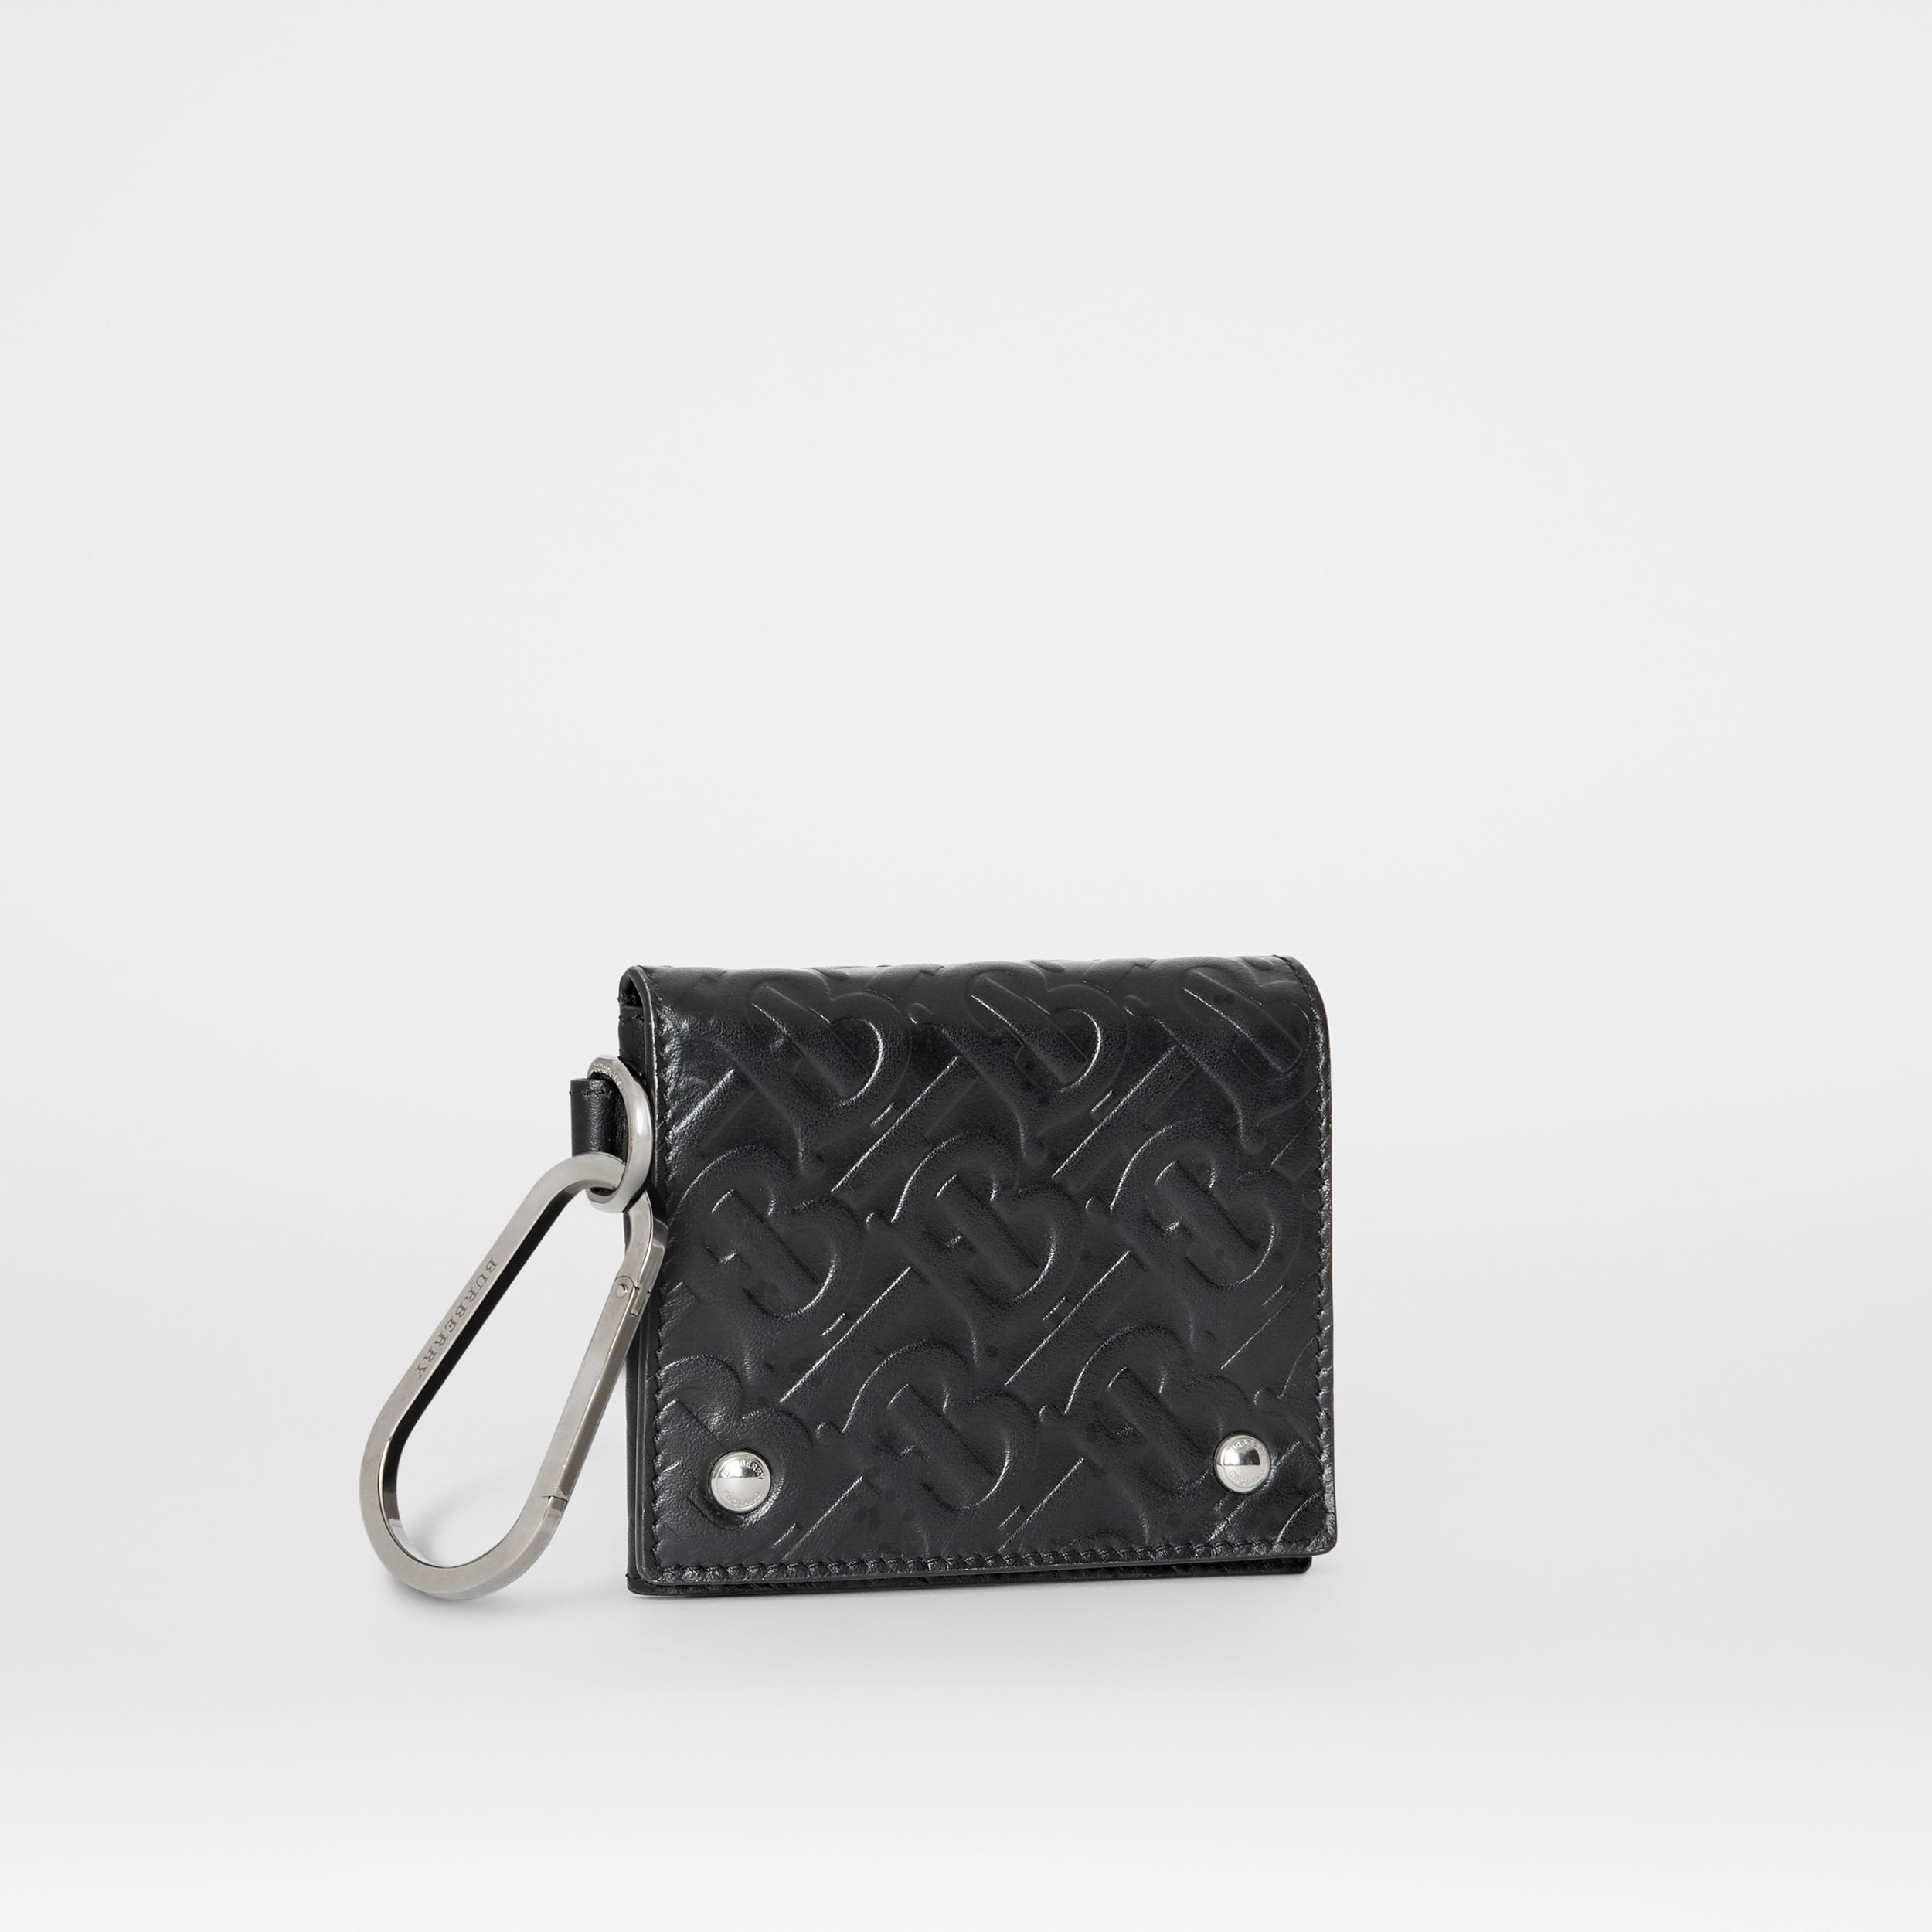 Monogram Embossed Leather Trifold Wallet in Black | Burberry - 4